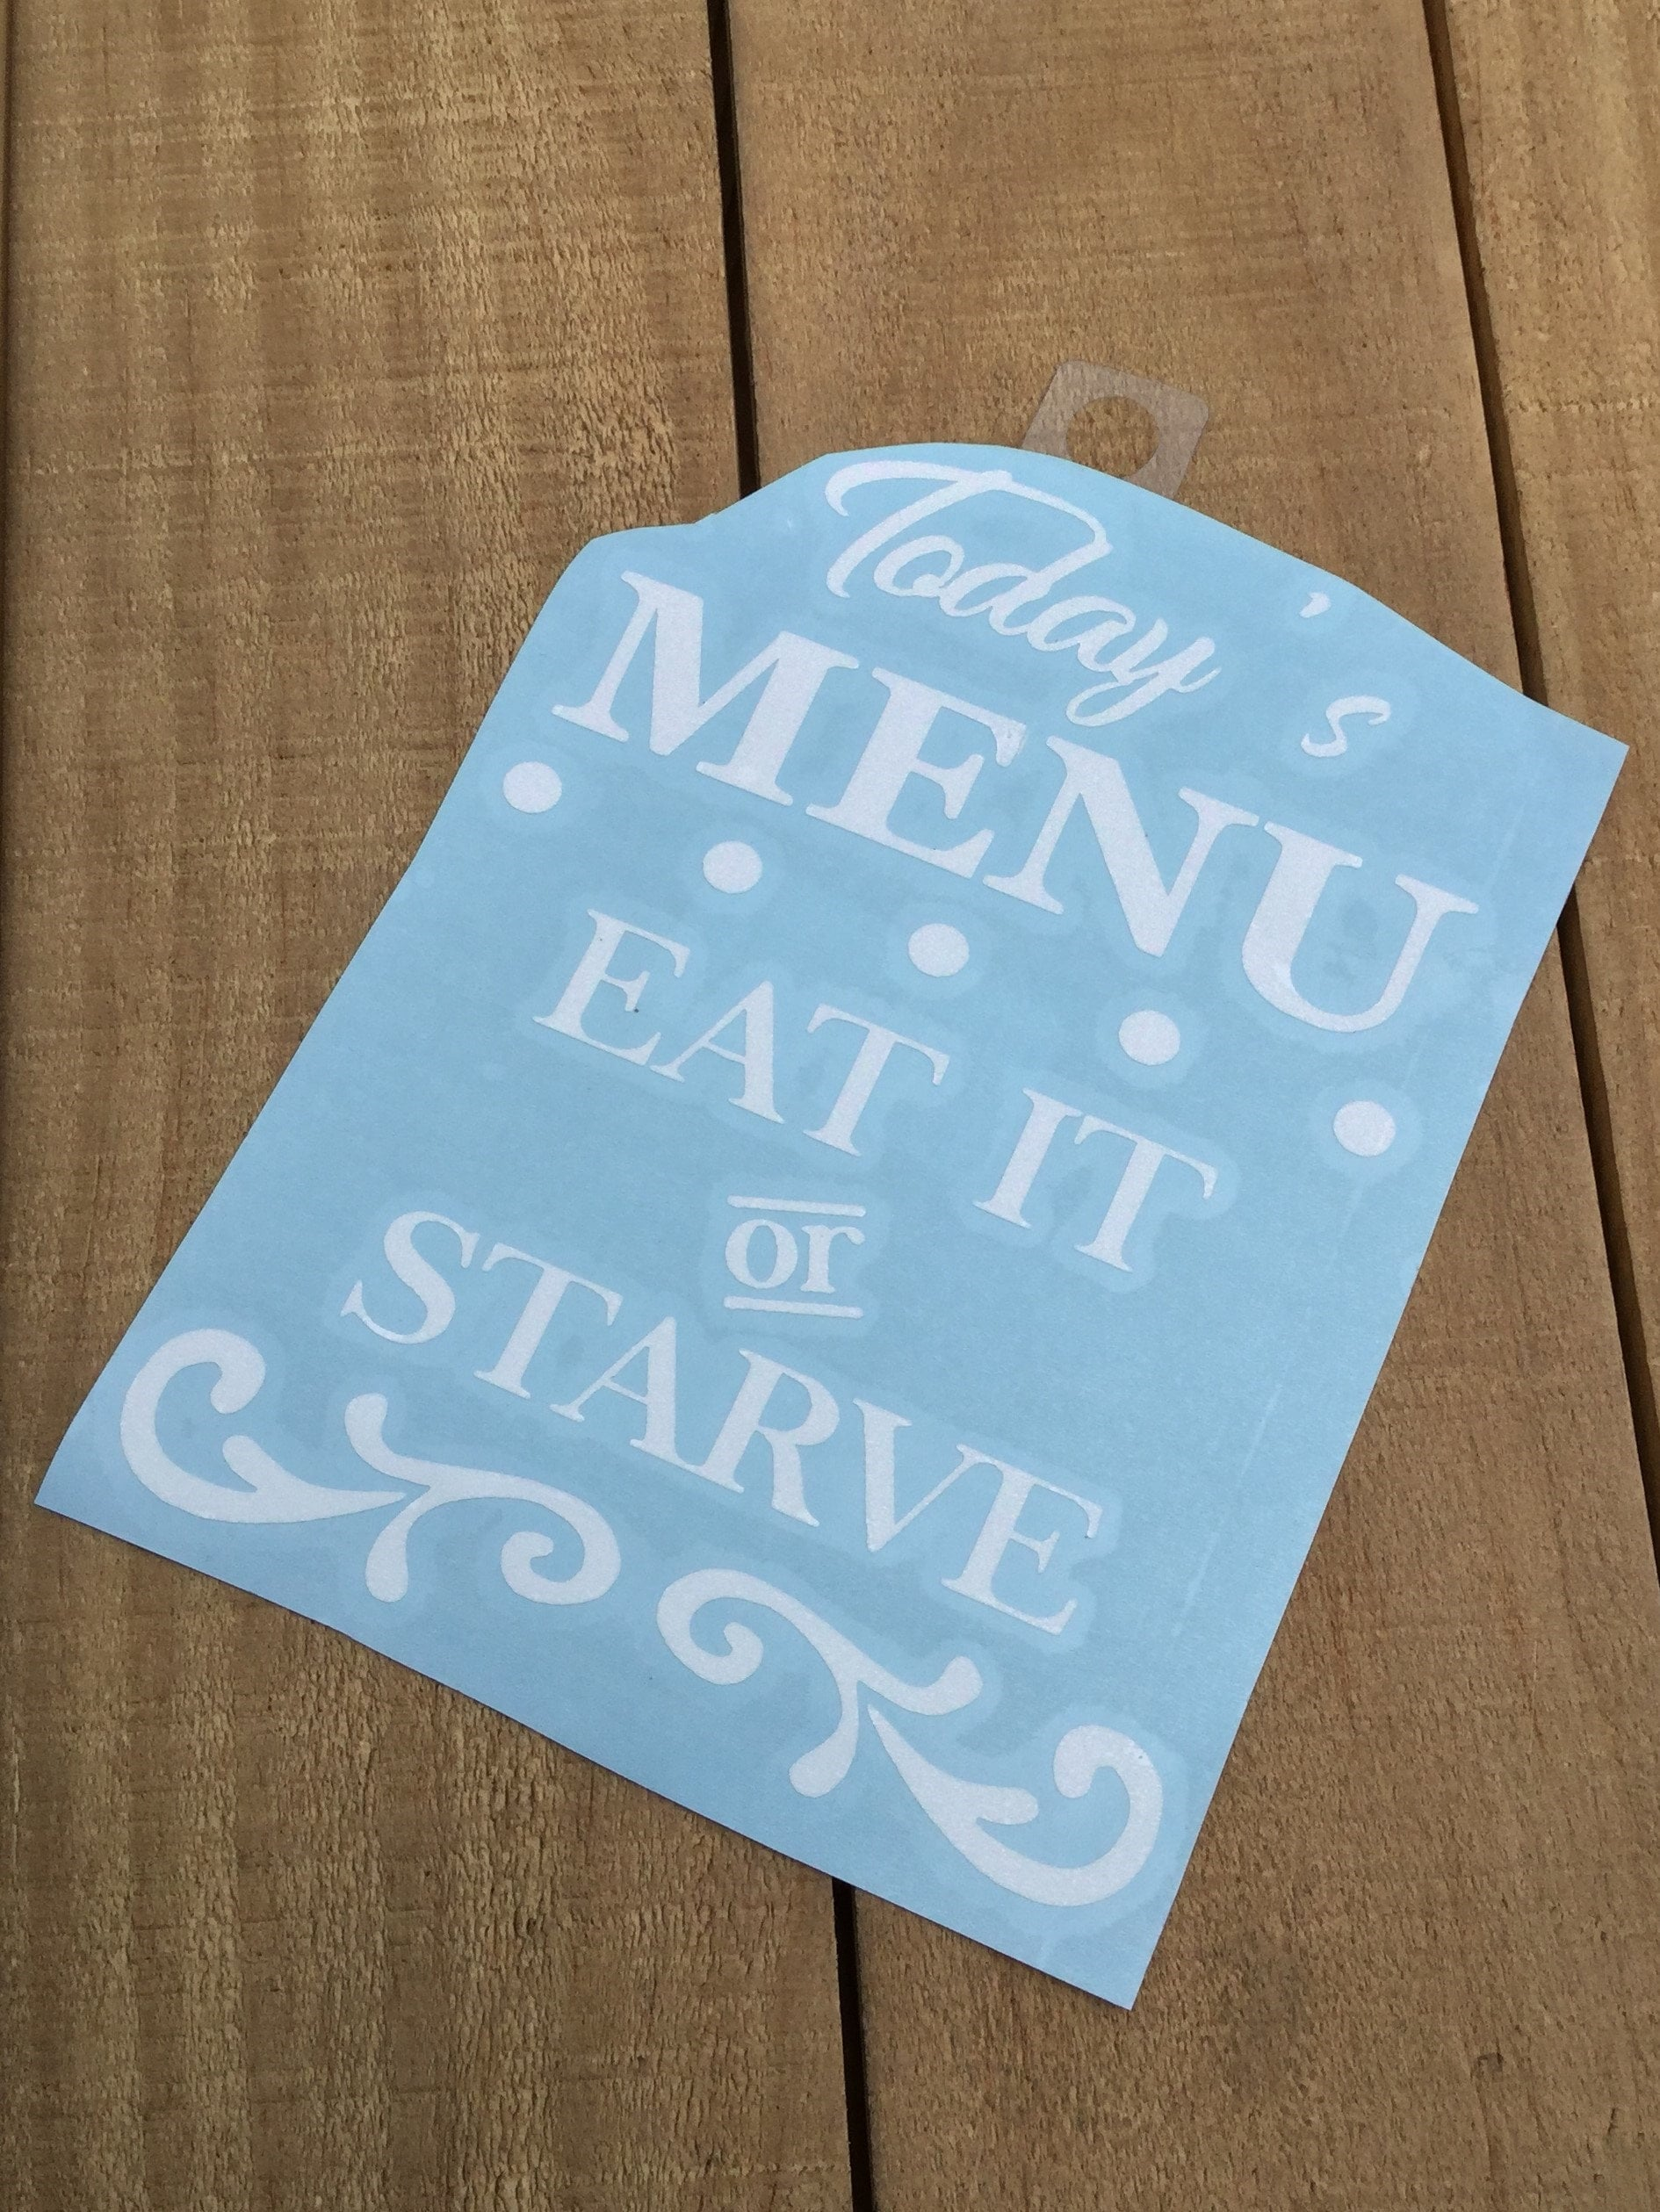 Menu Decal Mom Decal Mom Life Car Decal Kitchen Decal